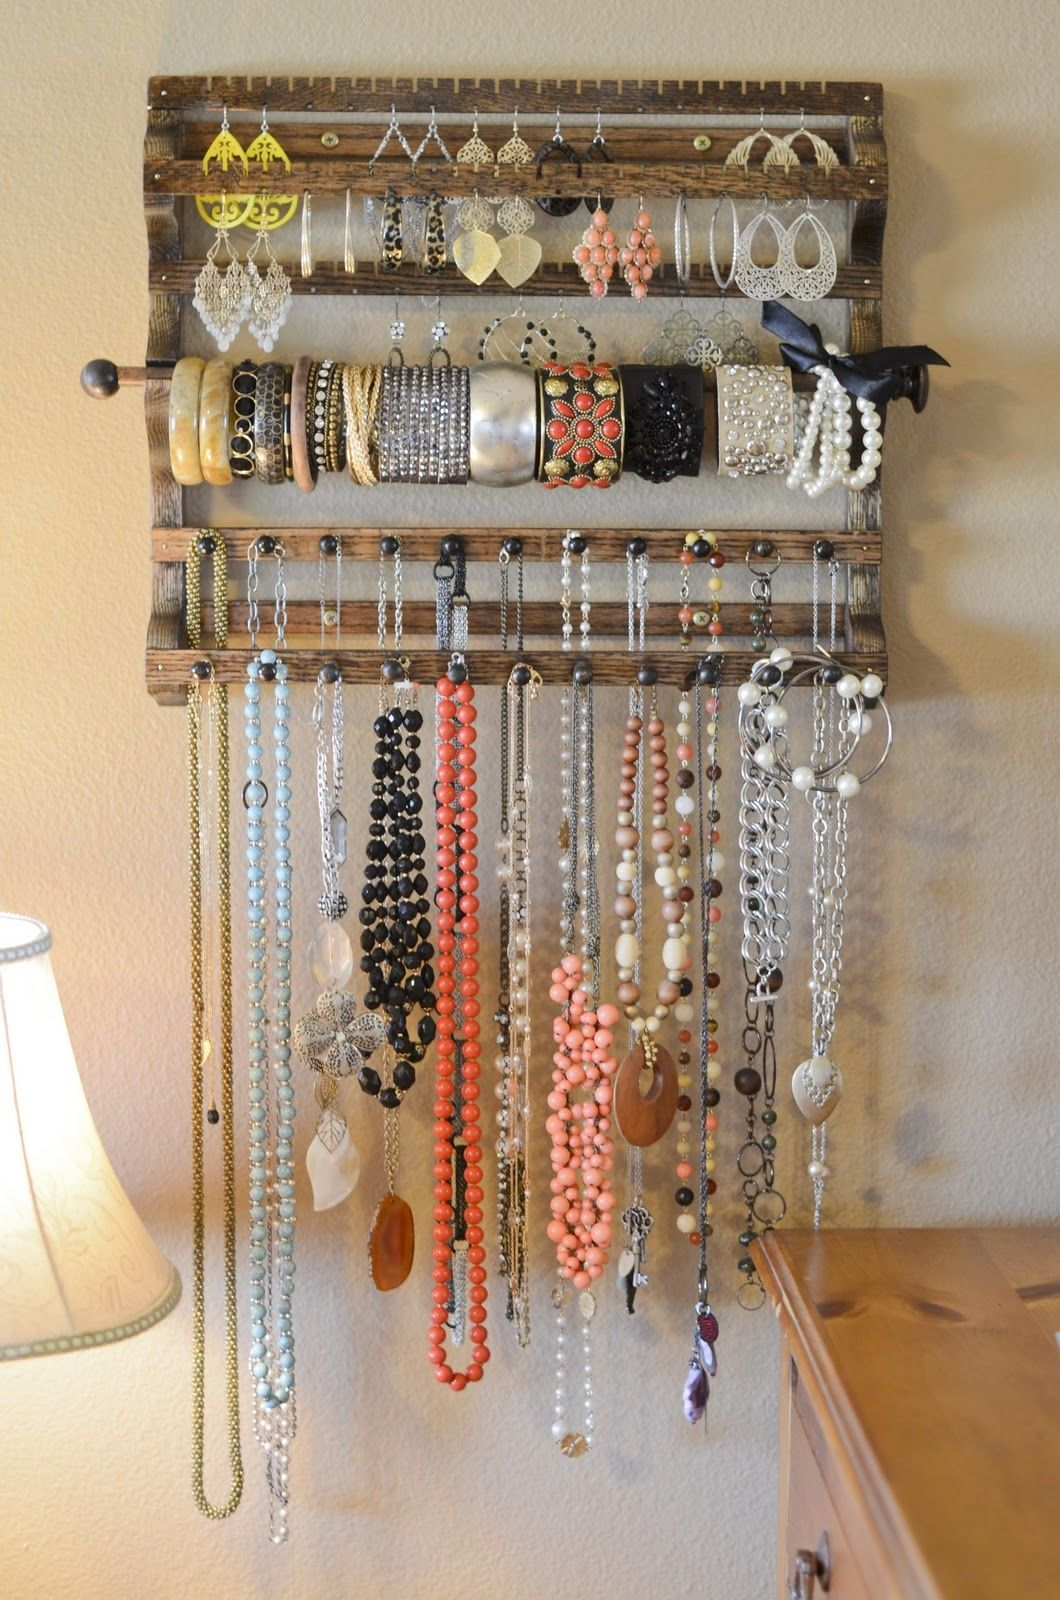 Wooden Jewelry Organizer Pictures Photos and Images for